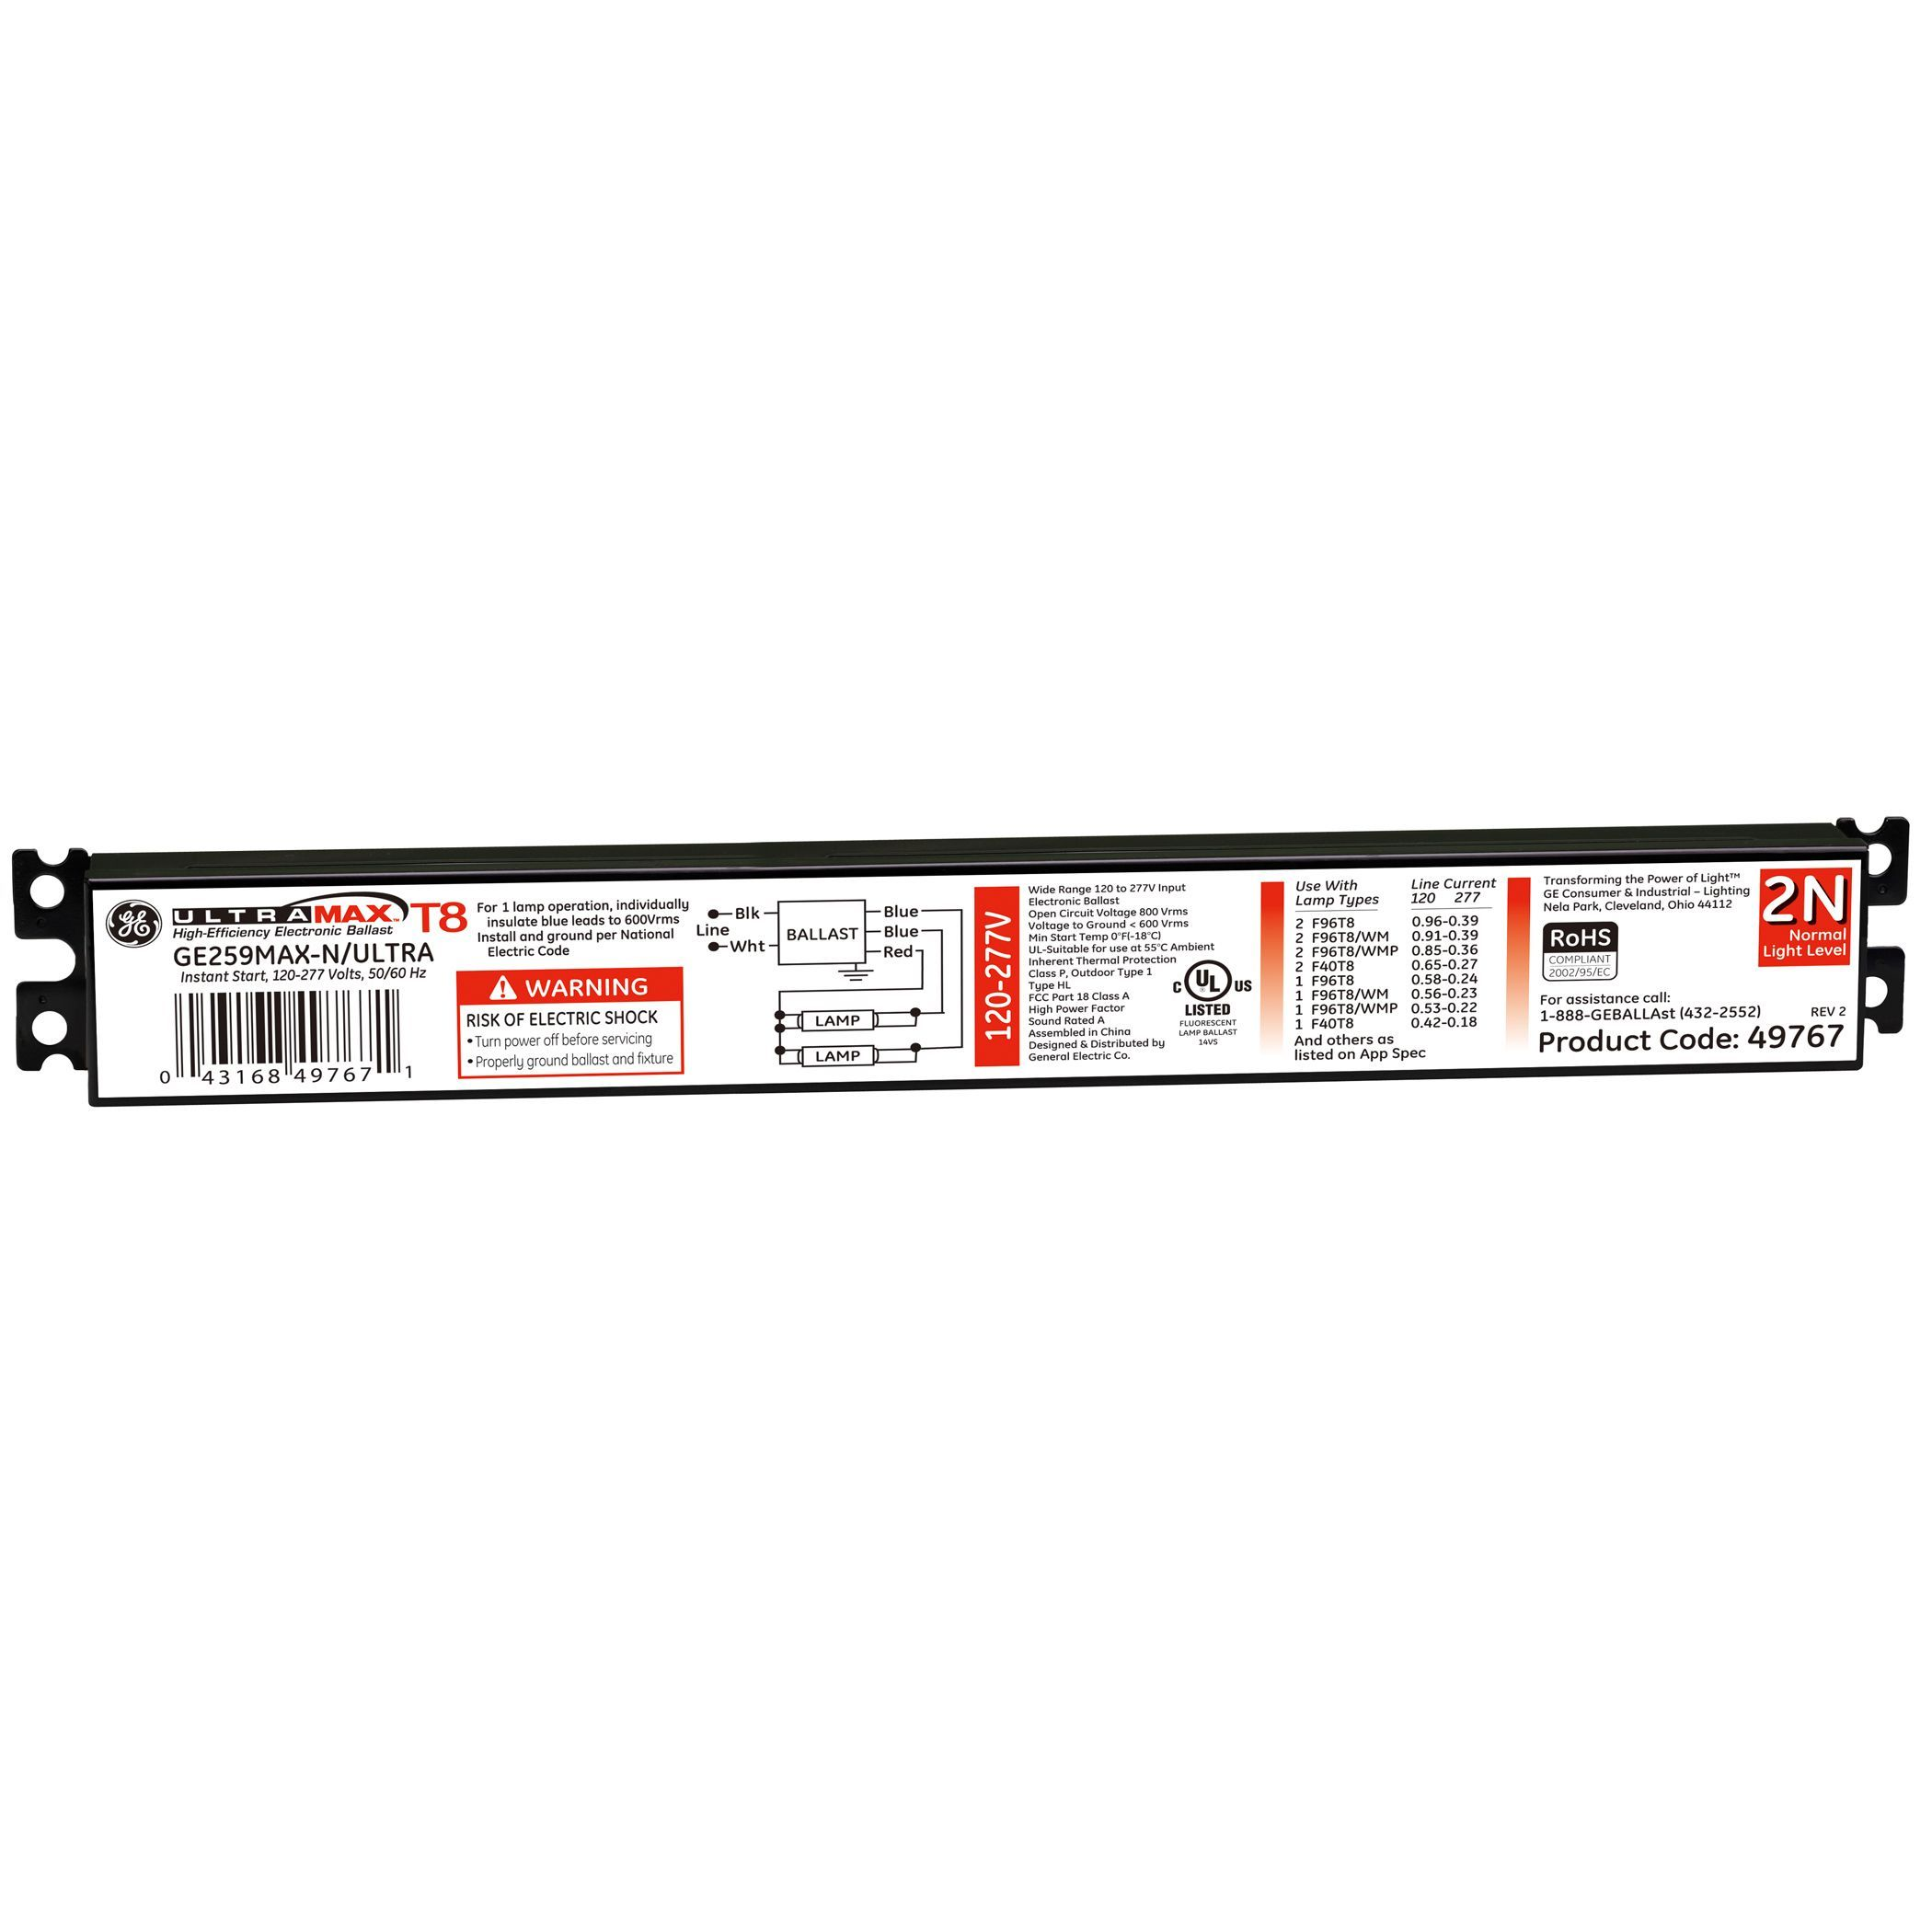 Ge Lighting 23954 Universal Electronic Fluorescent Ballast Lights Black Products